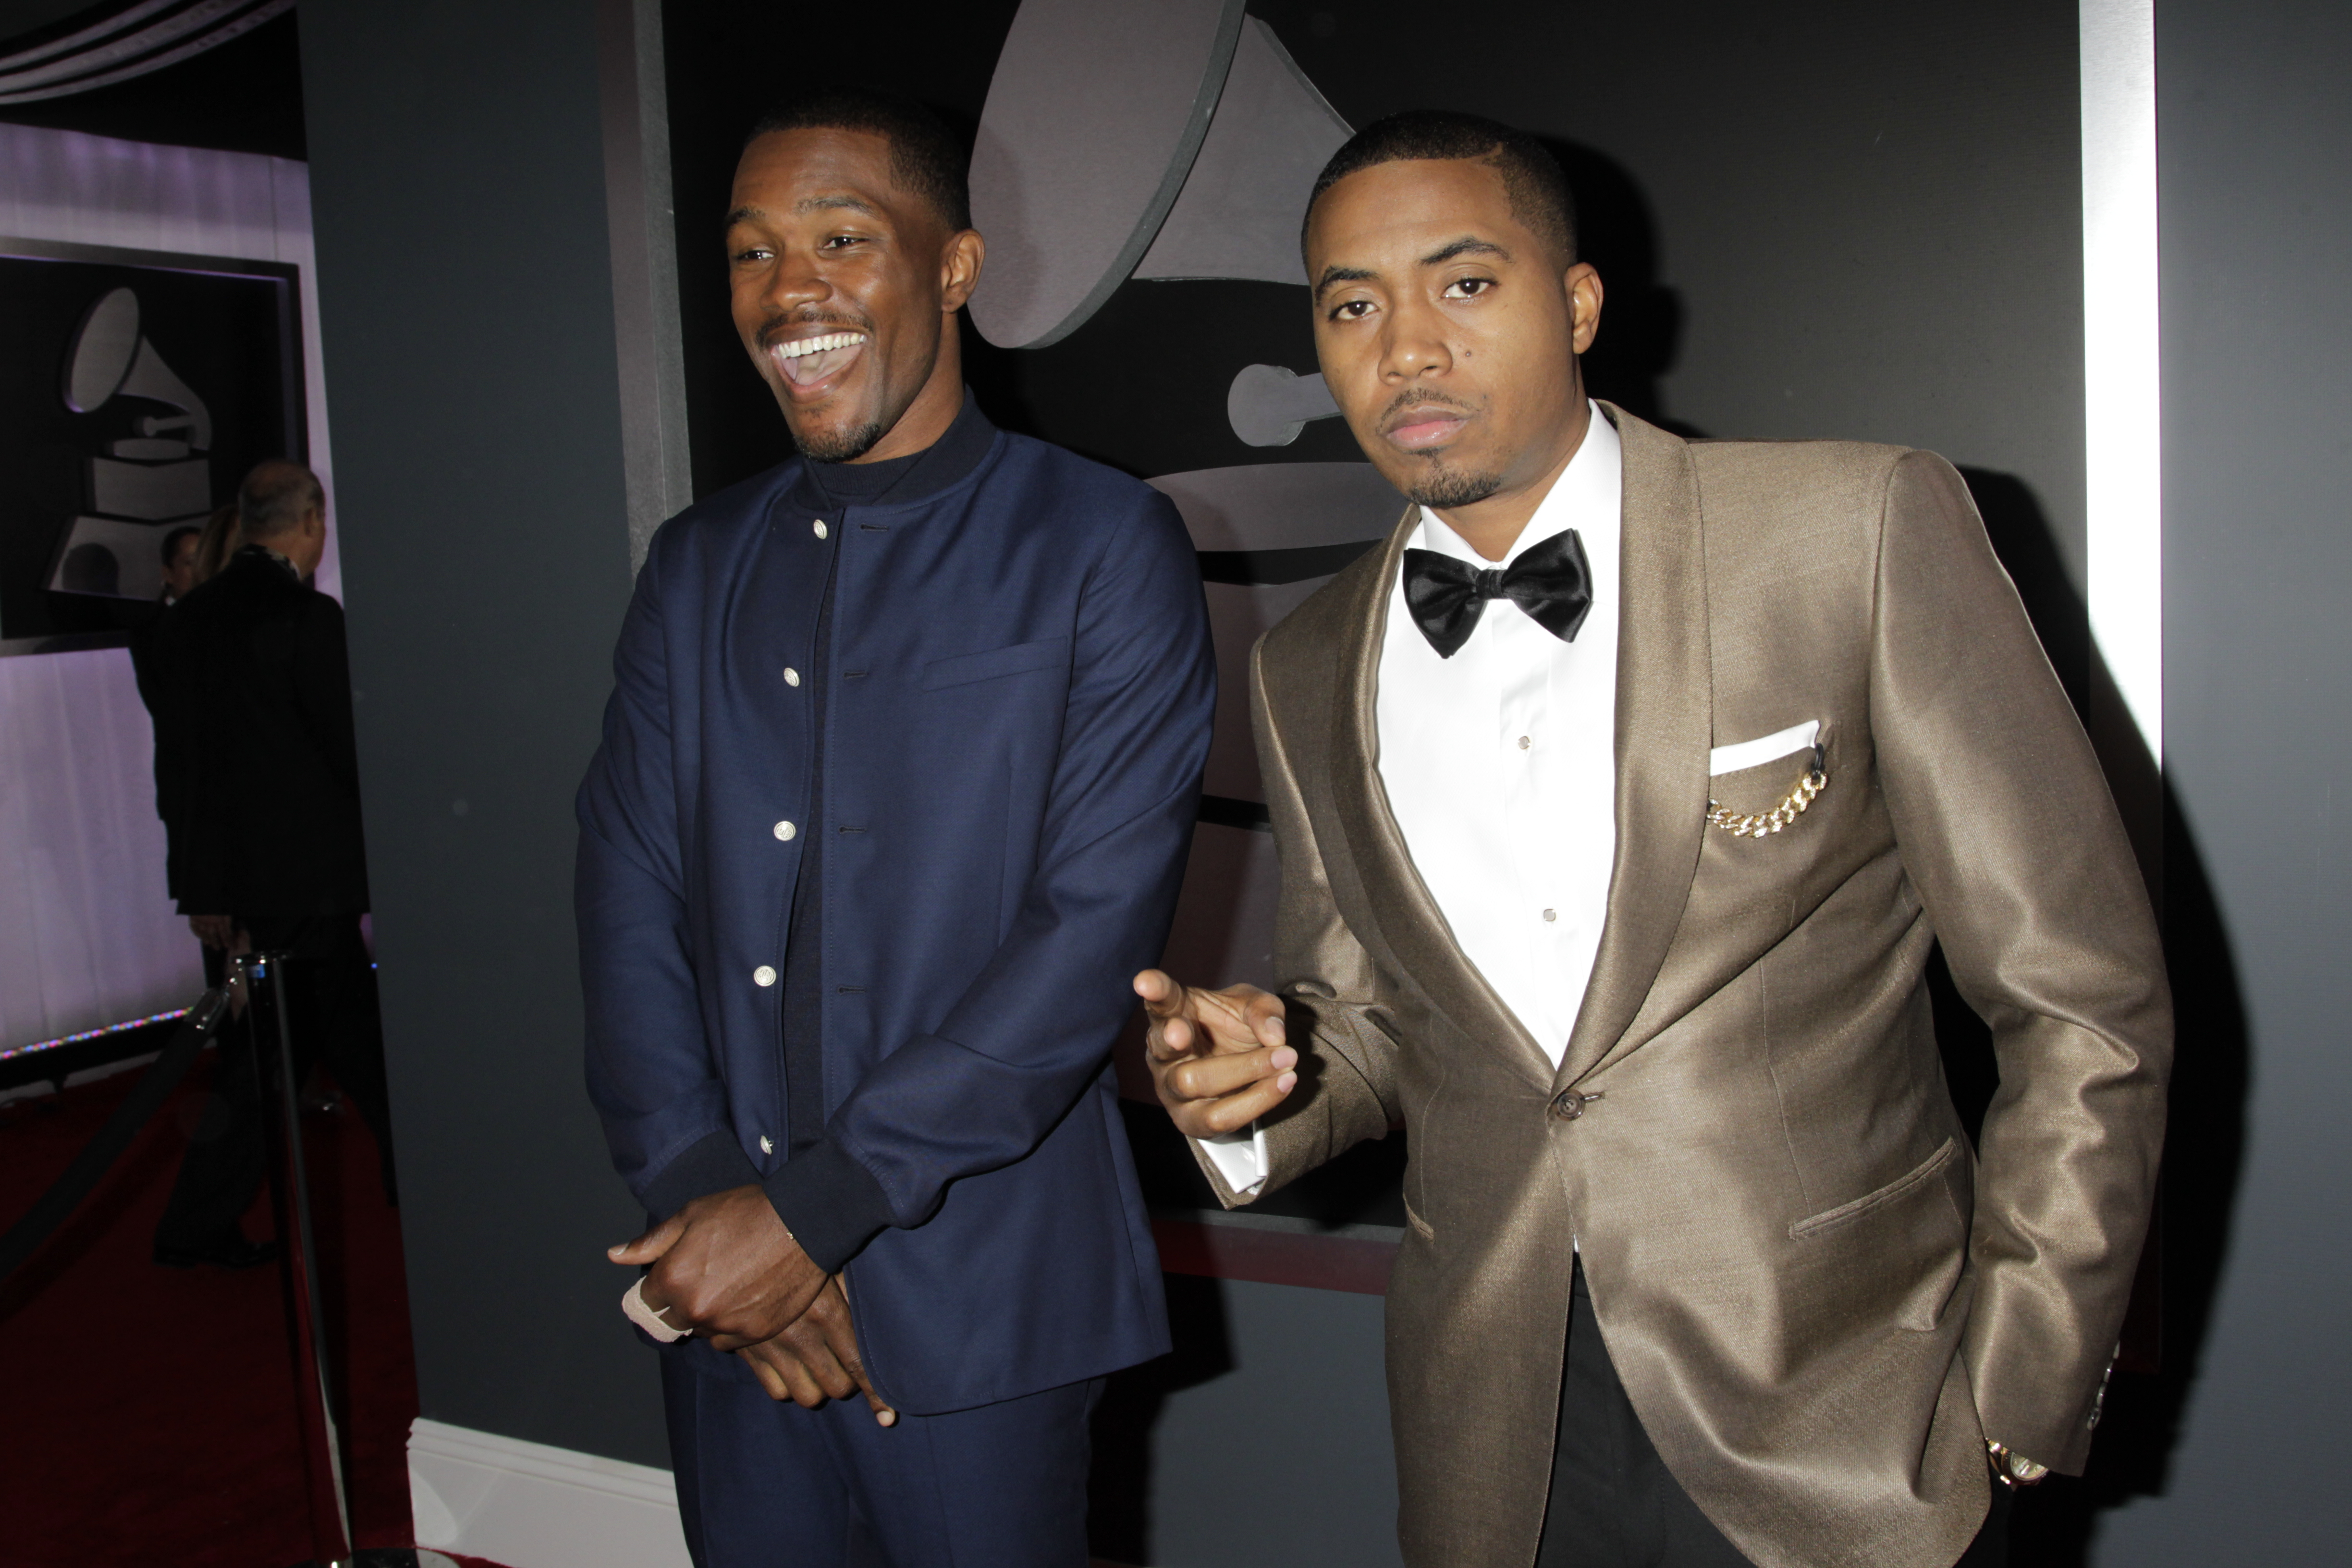 Frank Ocean and Nas